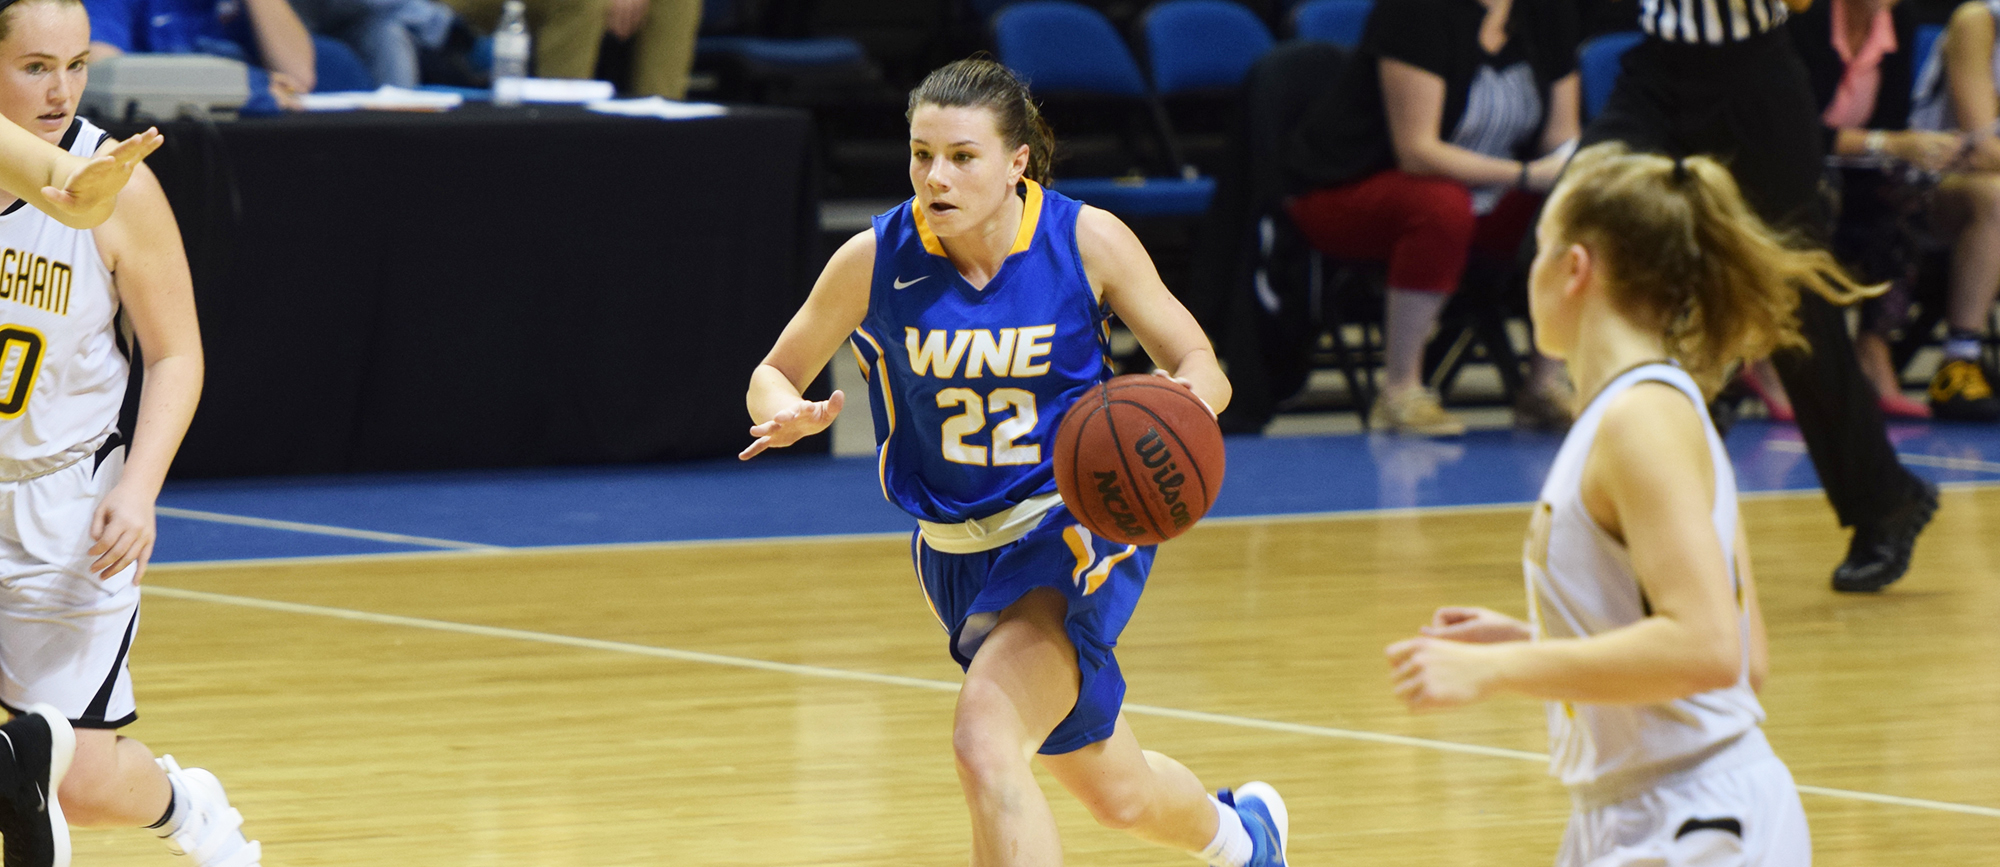 Sophomore guard Emily Farrell scored 14 points and grabbed a career-high nine rebounds in Western New England's win over Curry on Thursday night.